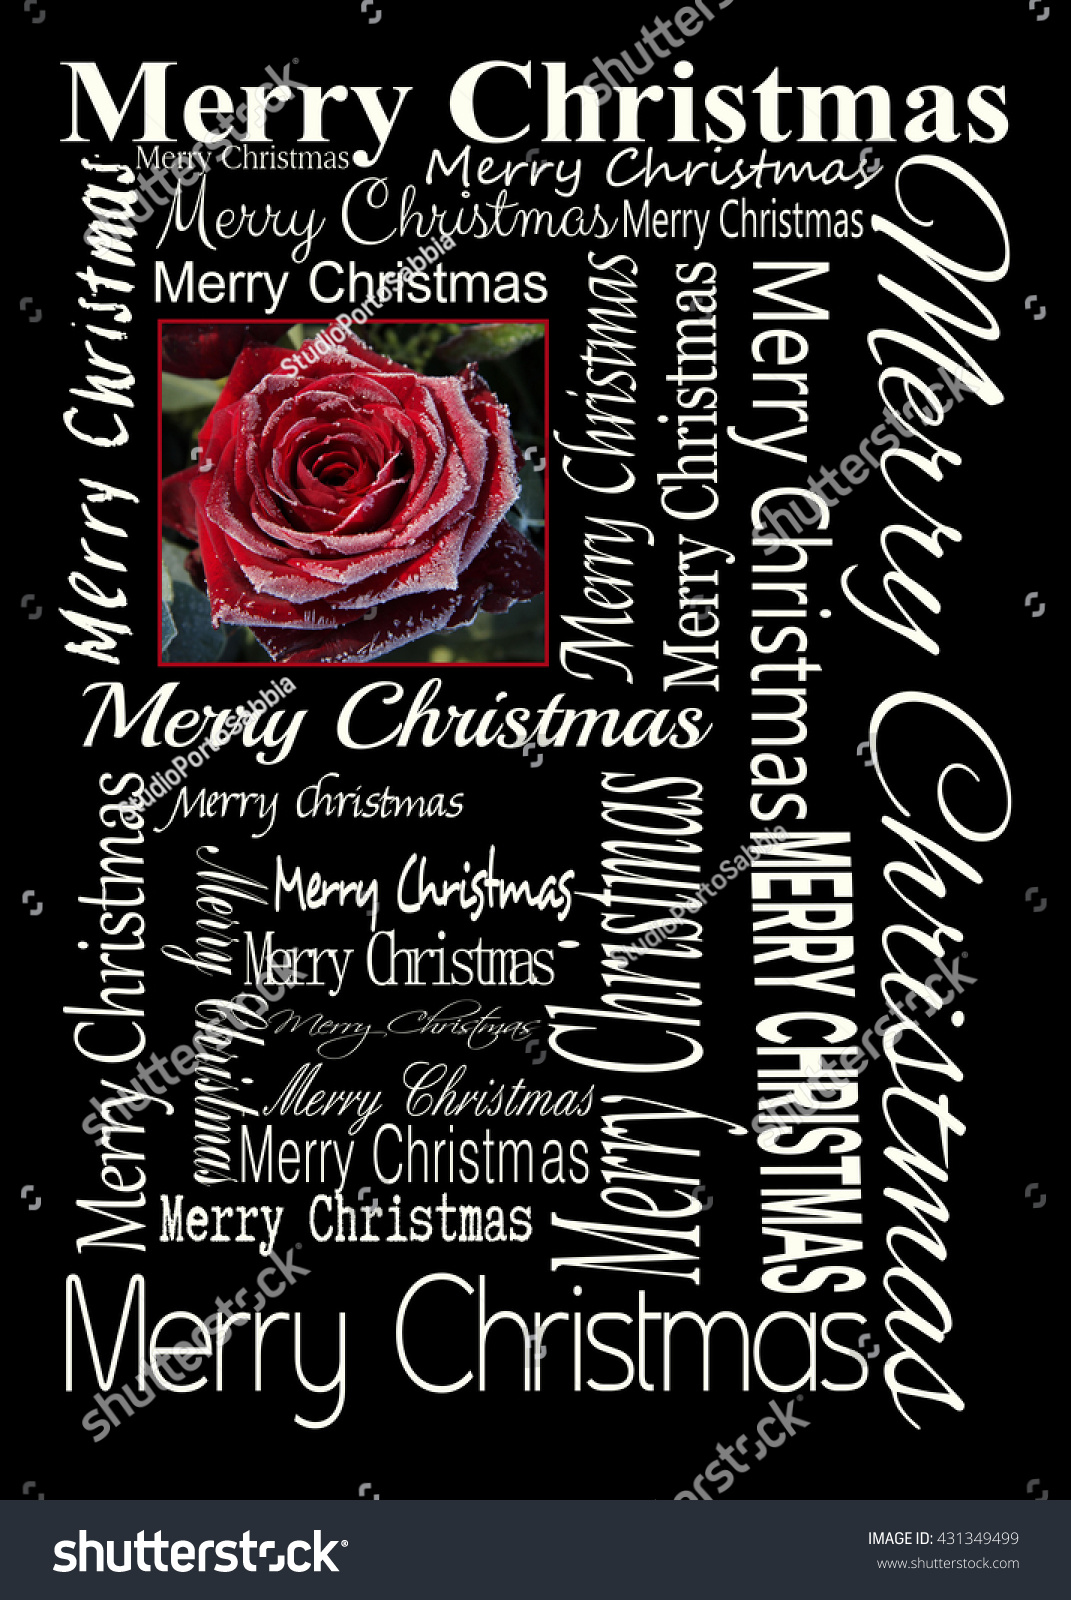 Merry Christmas Card Single Red Rose Covered Stock Photo (Edit Now ...